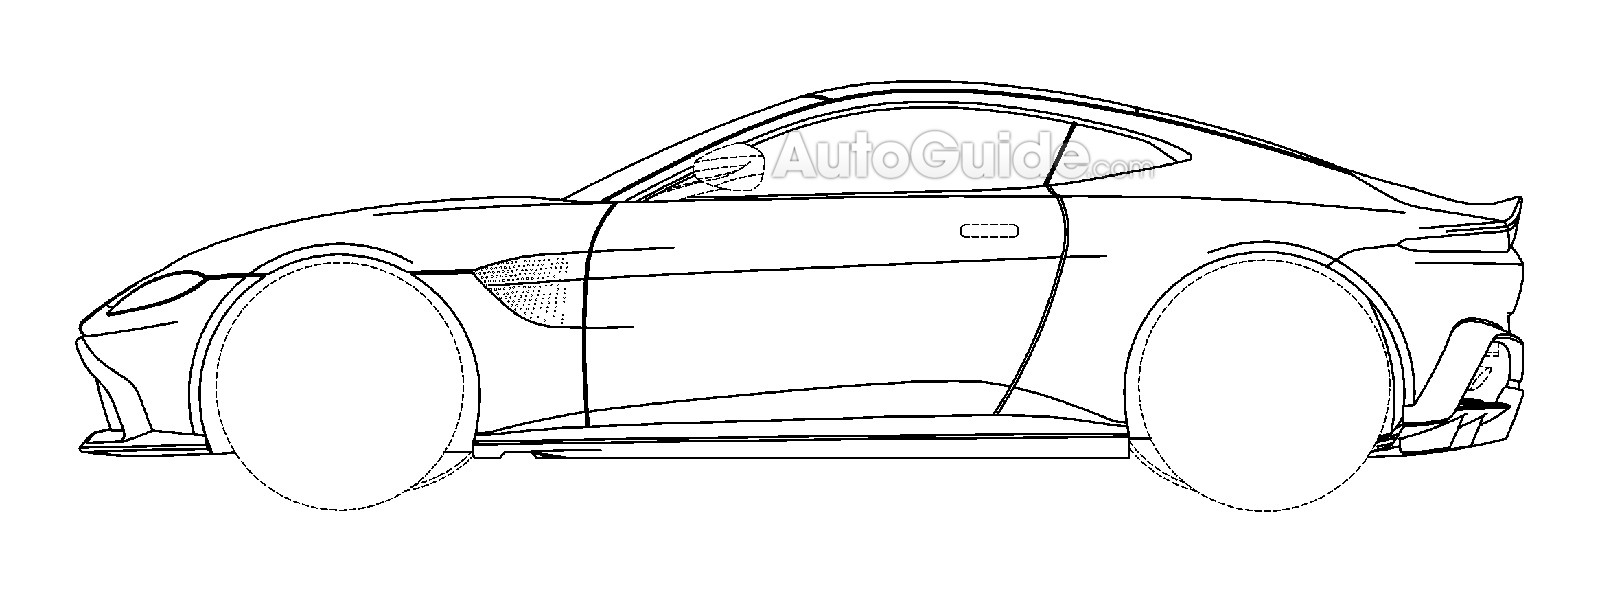 aston martin vantage 2018 side view. 2018 Aston Martin Vantage Patent Drawing Side View